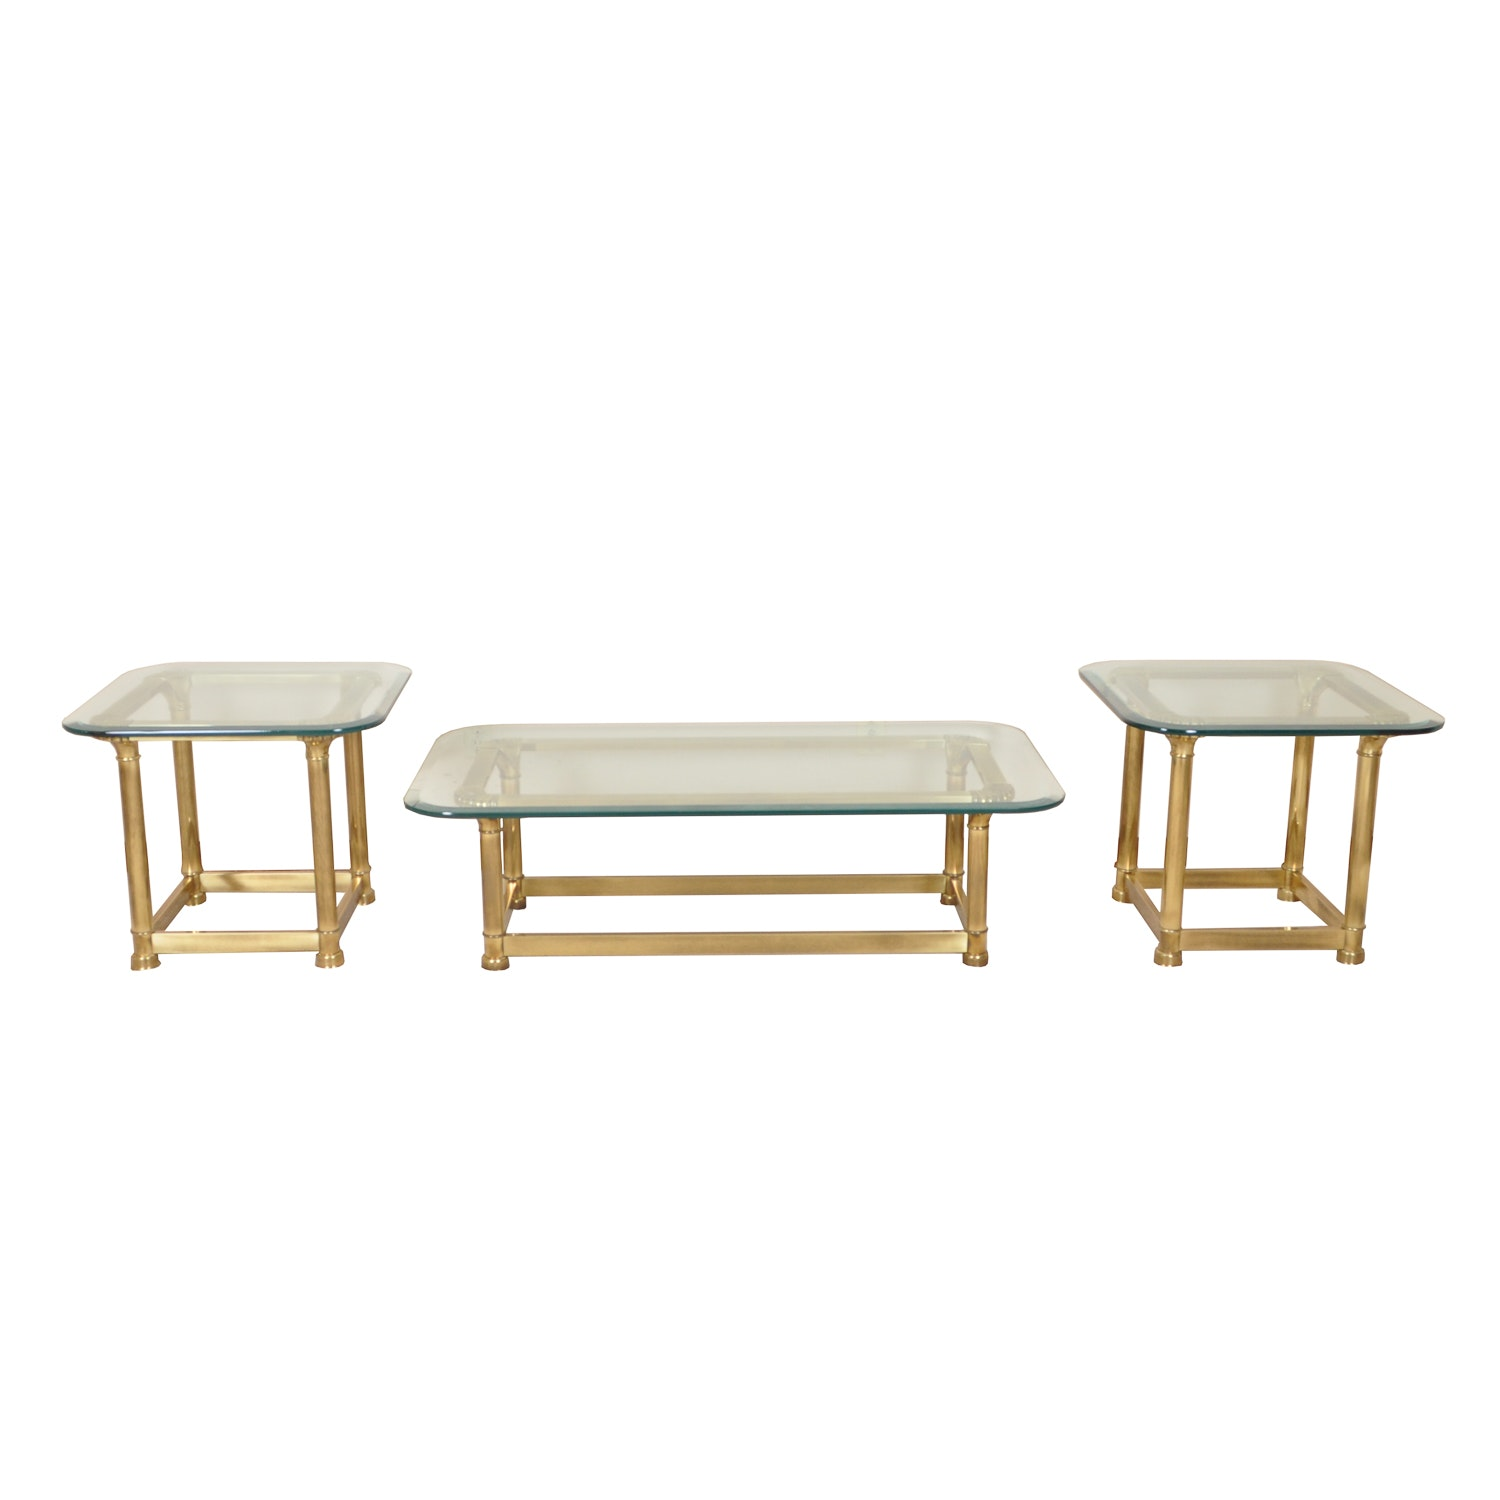 Glass-Top Brass Coffee Table with Matching End Tables